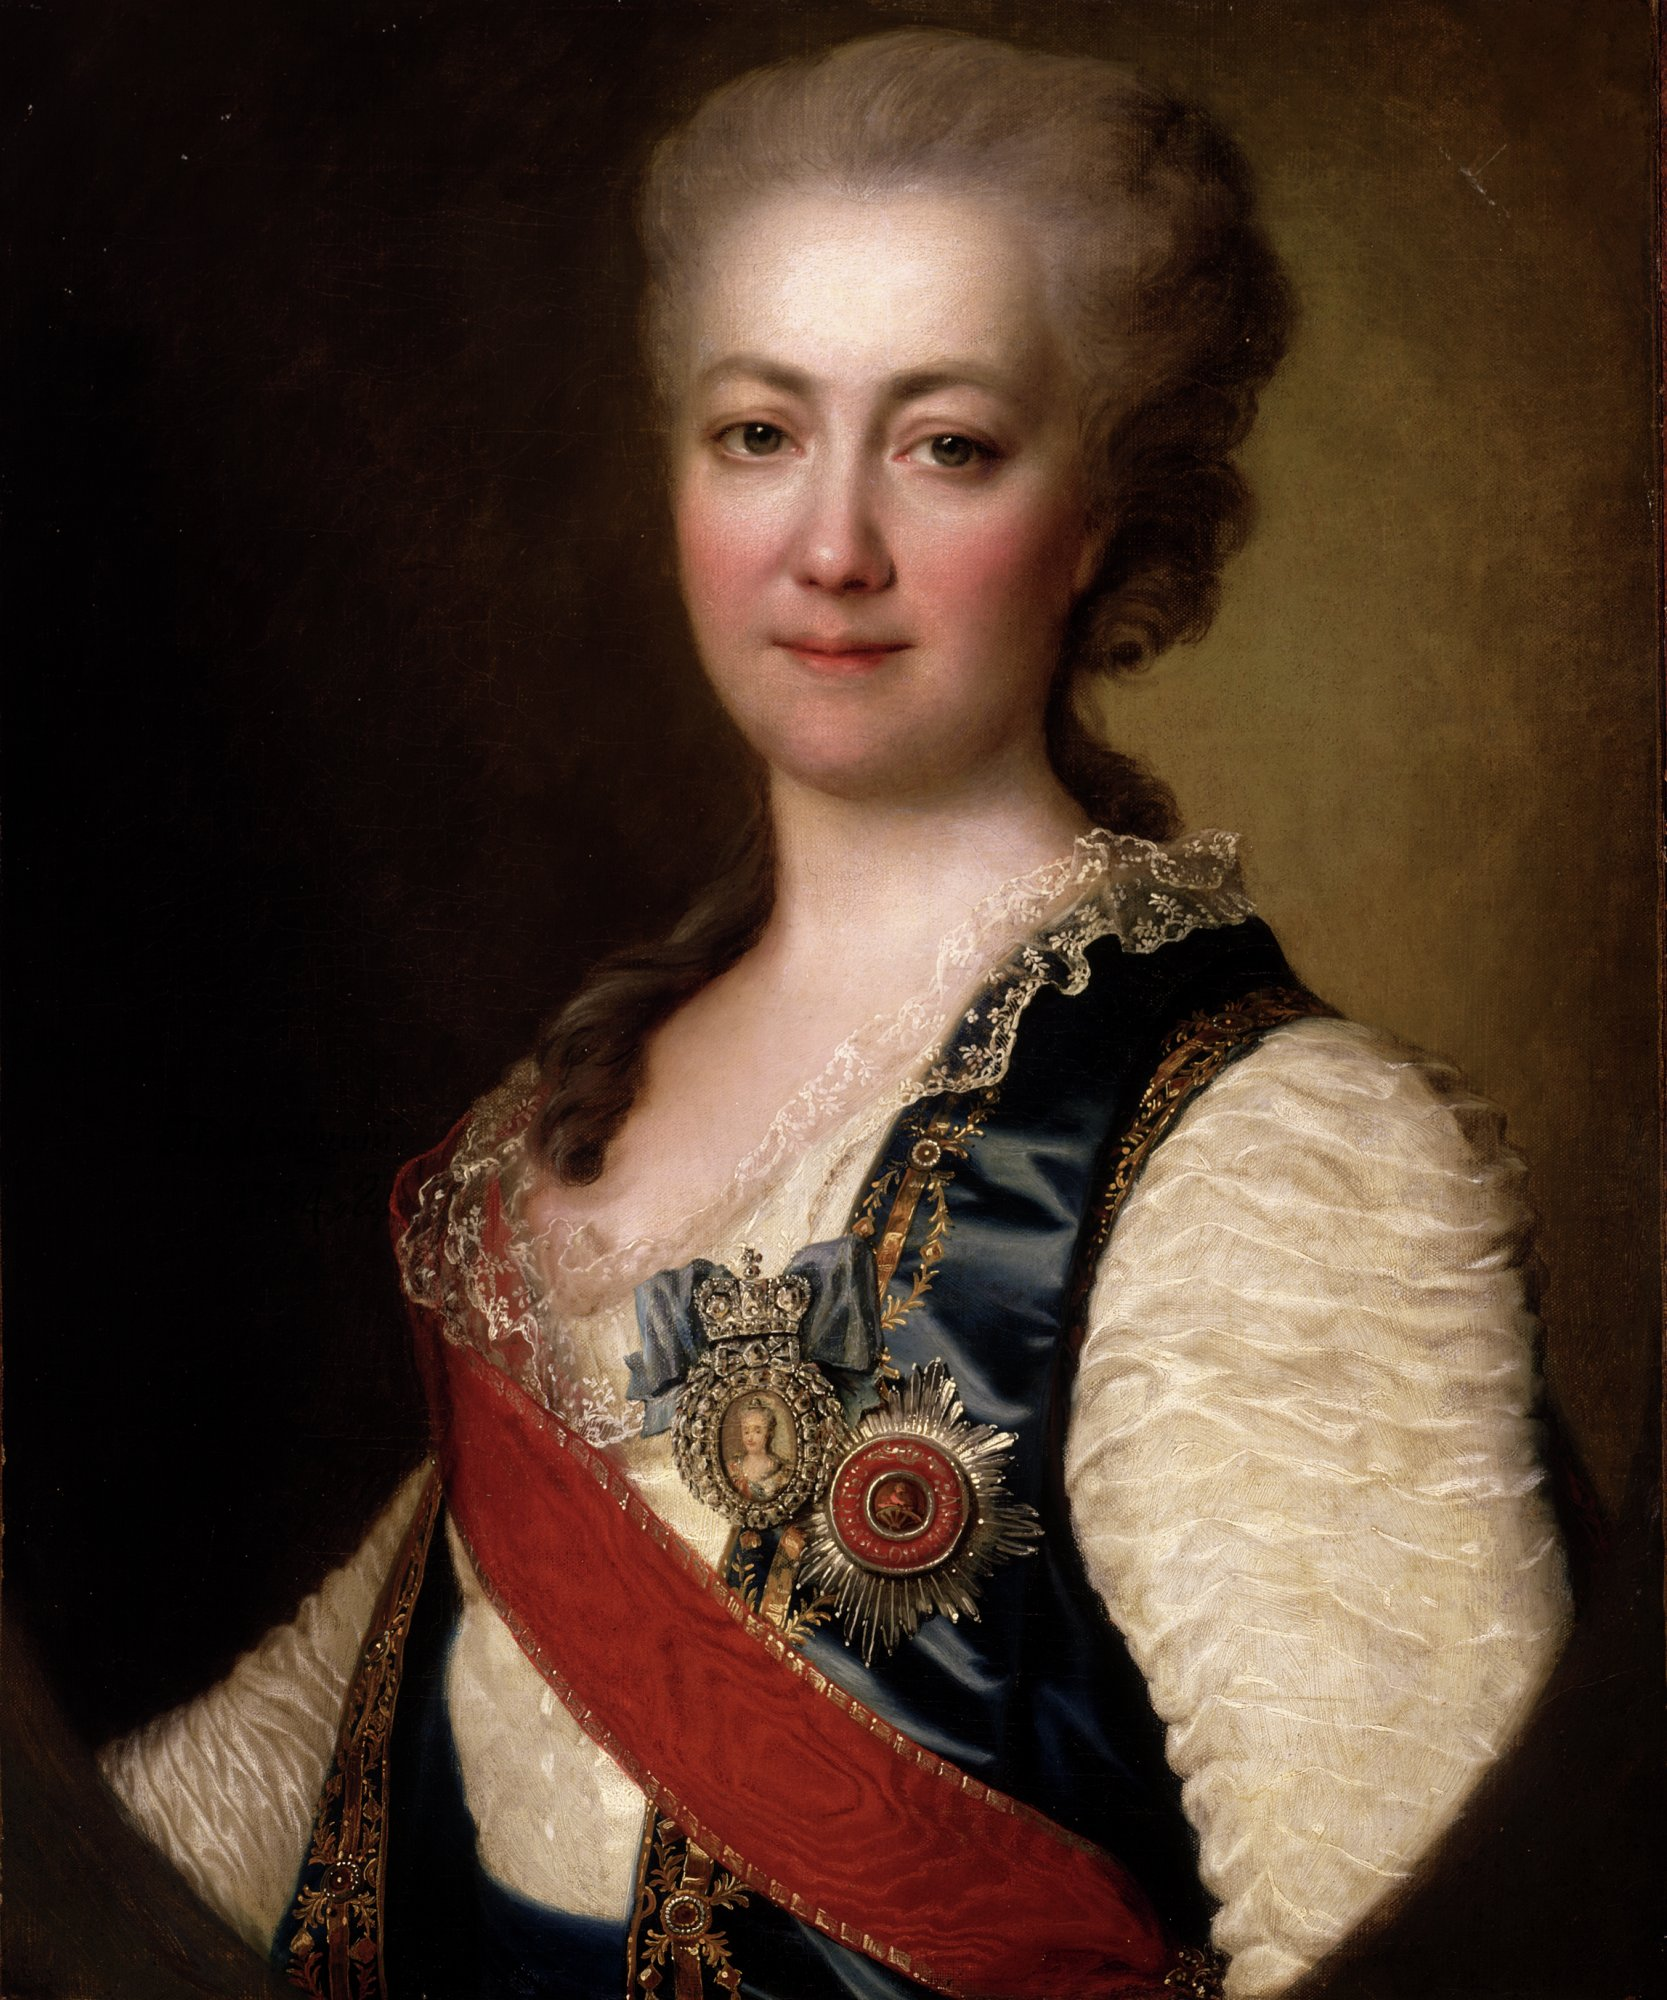 an analysis of the accomplishments of catherine ii an empress of russia An analysis of the accomplishments of catherine ii an empress of russia an analysis of the topic of the experiment on charlie.